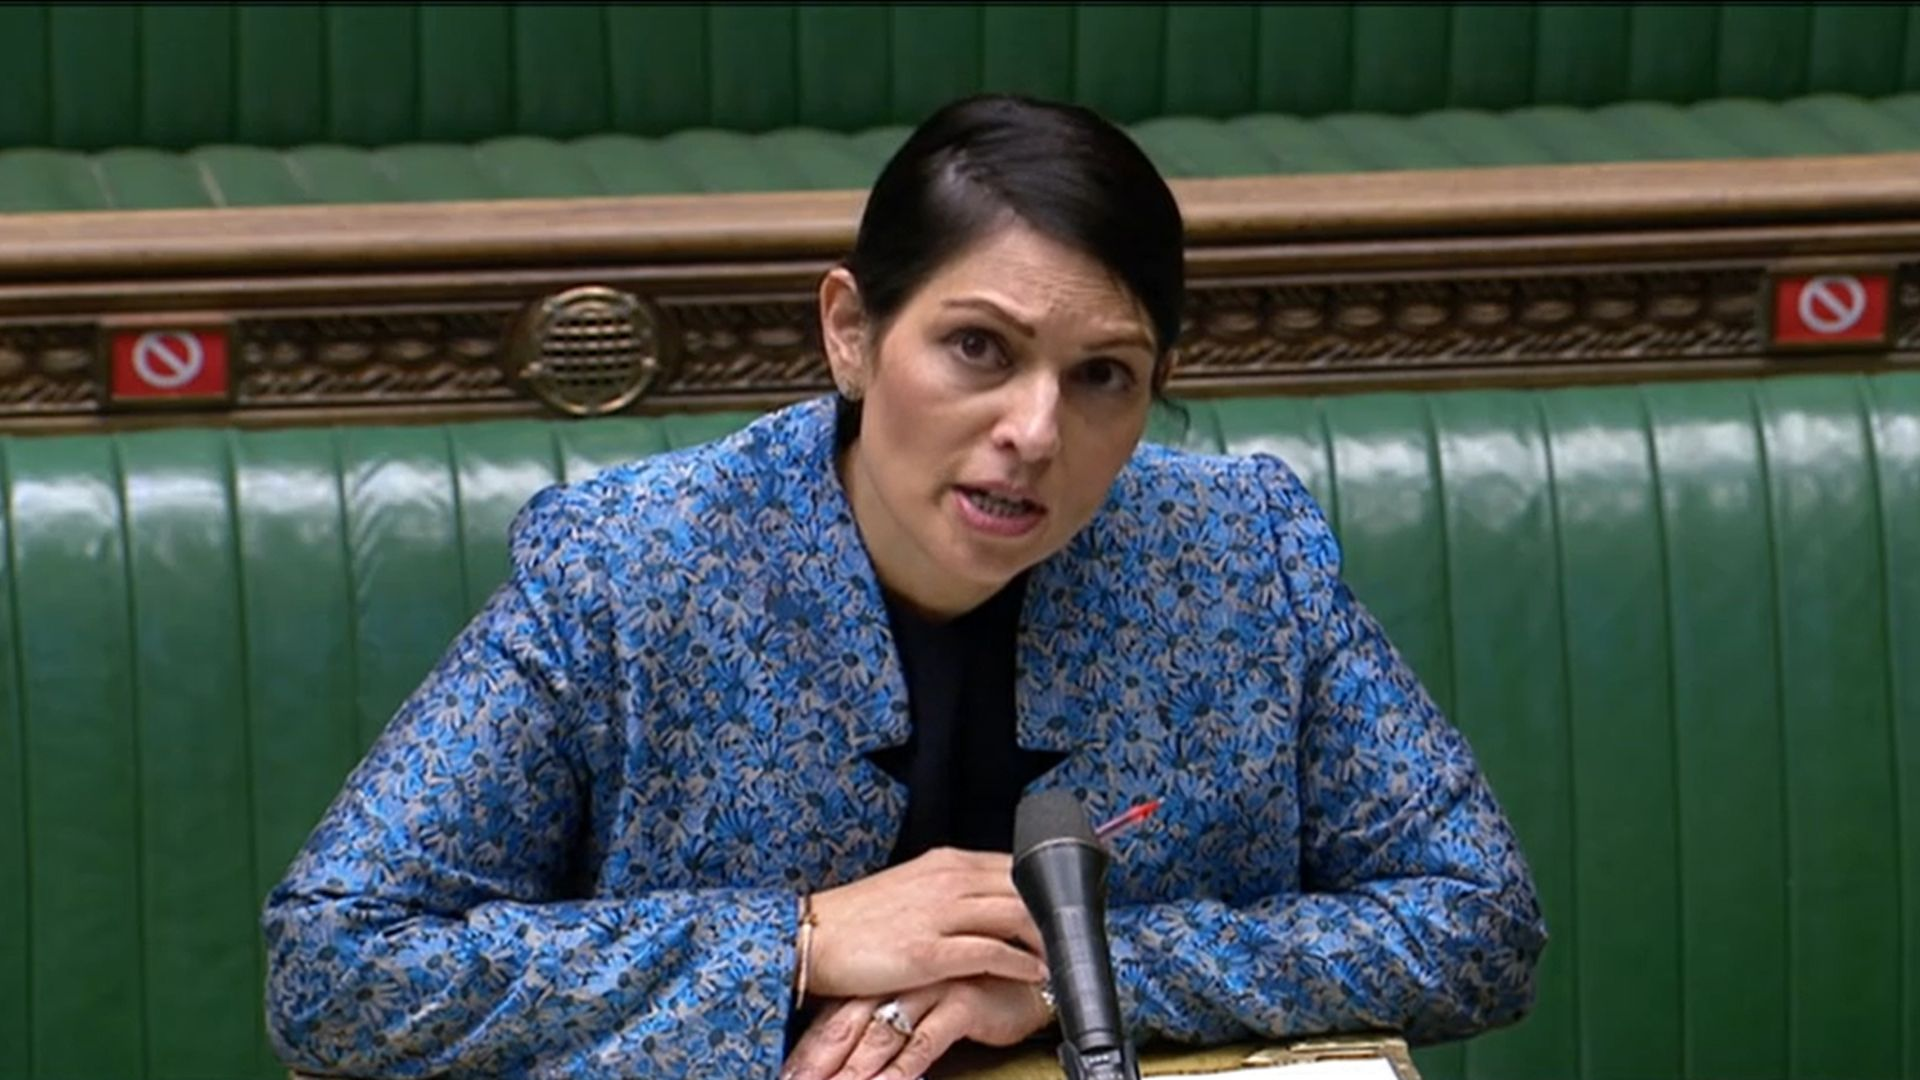 Priti Patel (pictured above) was warned by the UN that the government's new asylum seeker legislation 'risks breaching international law' - Credit: PA